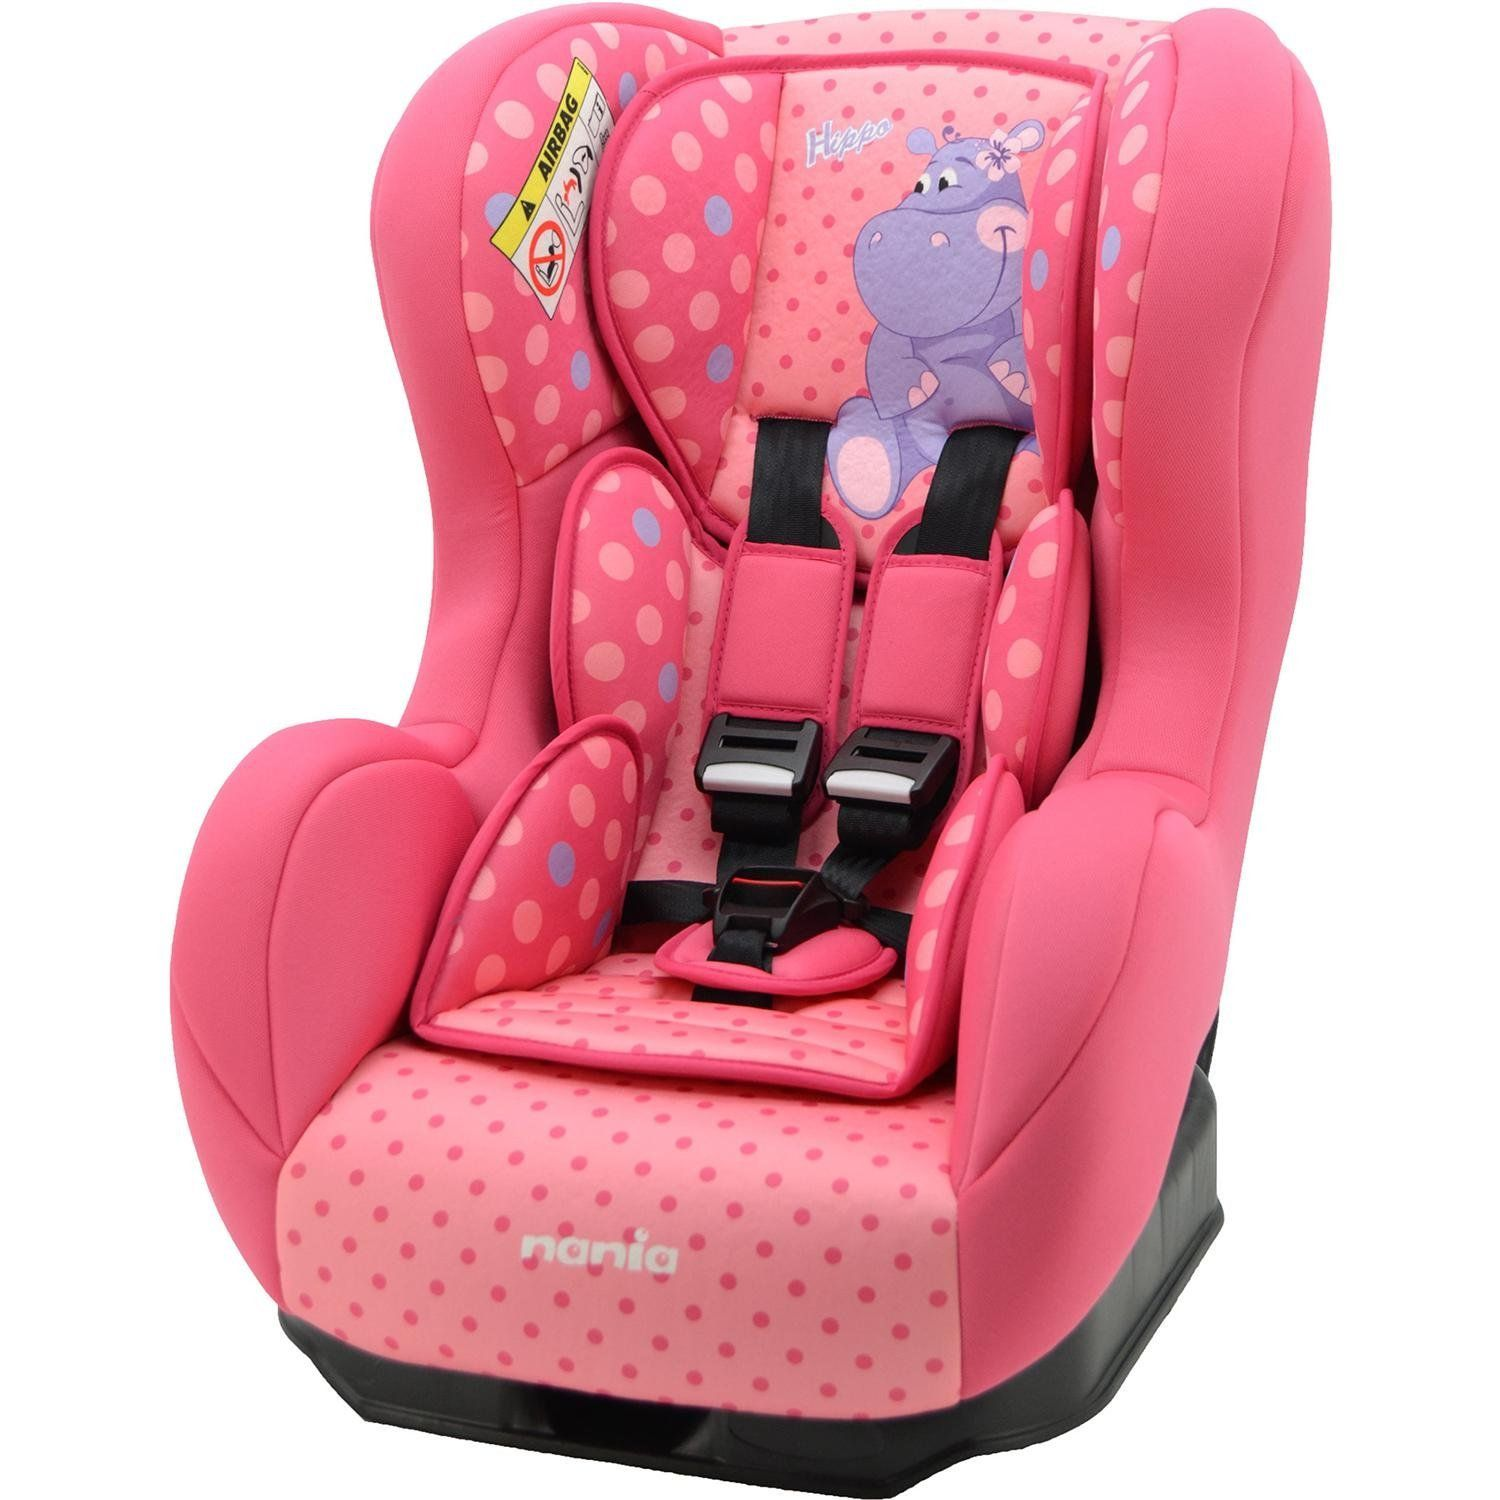 Pin by Annick Chancelle on Siège Auto Car seats, Baby